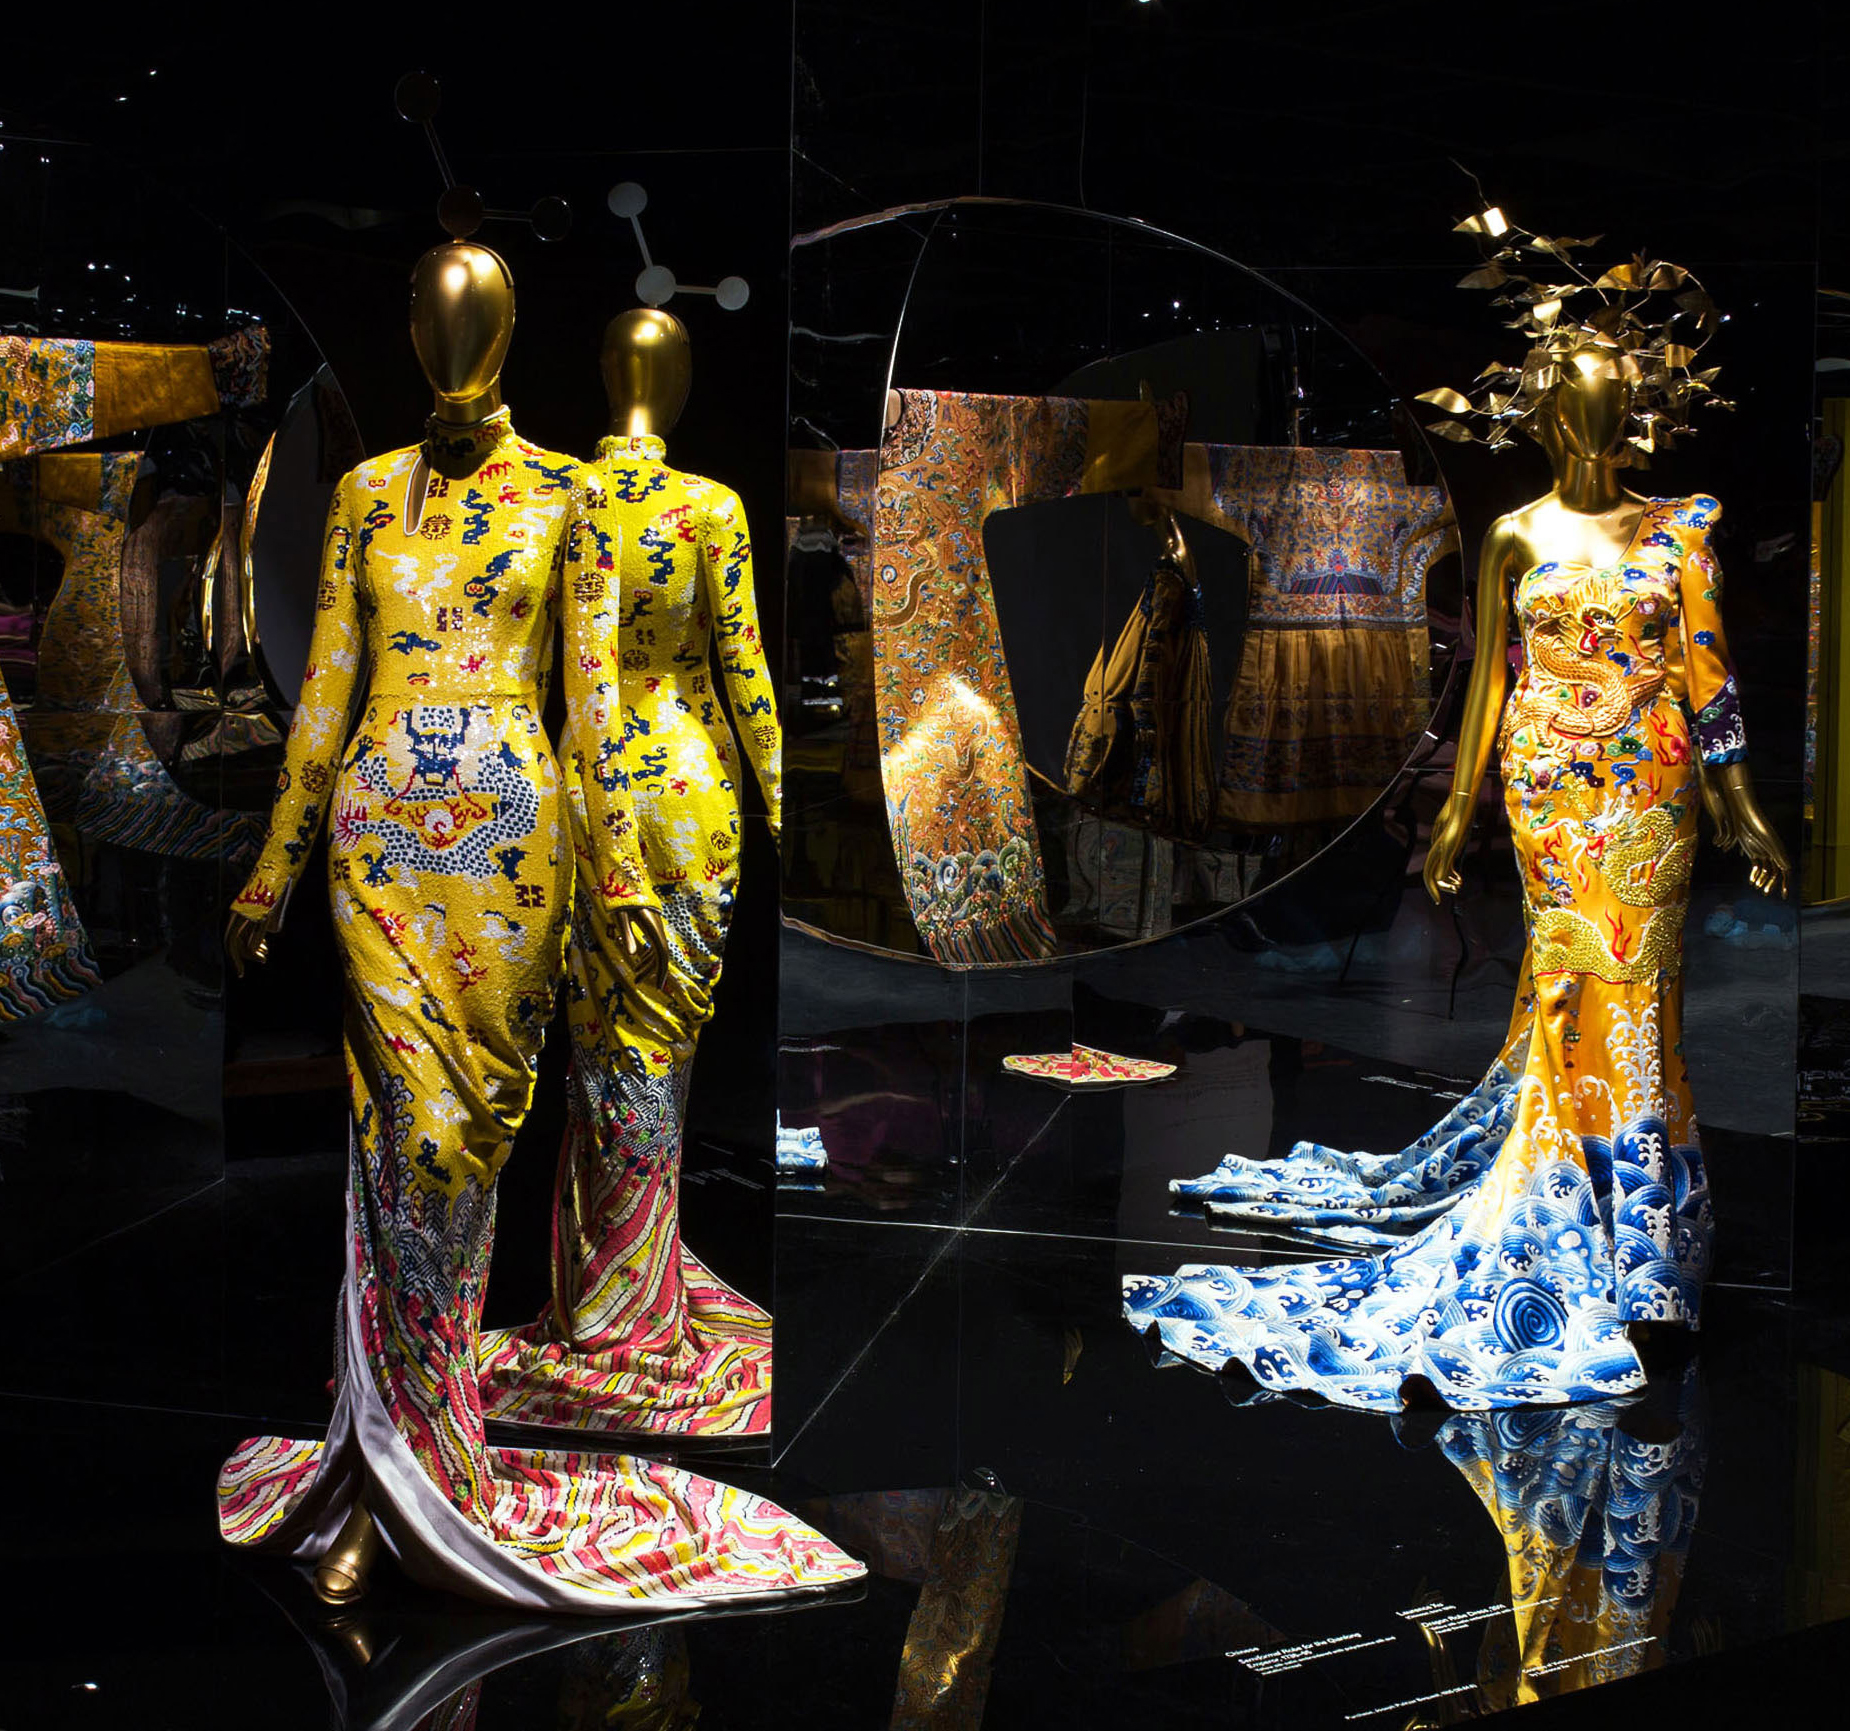 China: Through the Looking Glass Exhibition Extended through September 7 at the Metropolitan Museum of Art in NYC